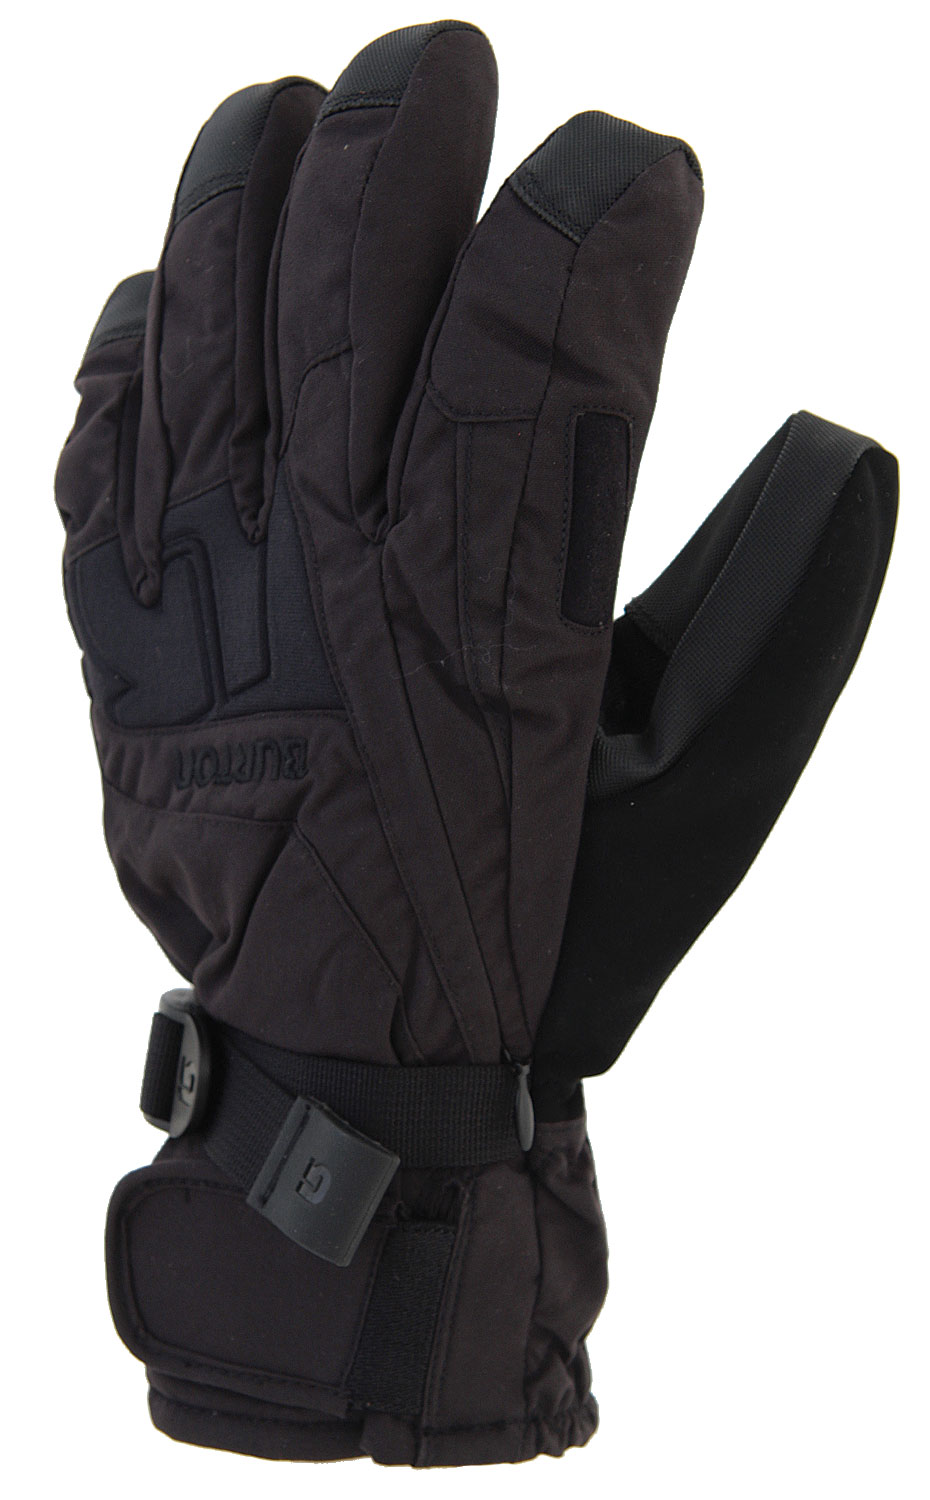 Snowboard Burton's Gore-Tex Under snowboard gloves give you a choice a two weatherproof and durable DRYRIDE outers that ensure comfort and dryness. The GORE-TEX glove insert is waterproof and breathable, and PrimaLoft insulation fights off the frostbite. The Sticky Icky grip palm gives you no slip grip. There's even a soft chamois goggle wipe that clears up your goggles without scratching. Keeps your hands warm and dry for a full day of riding with Burton's Gore-Tex Under snowboard gloves.Key Features of The Burton Gore-Tex Under Glove: Choose From Two Unique Fabrics DRYRIDE Durashell 2-Layer Laminated Woven Tonal Comic Jacquard Fabric DRYRIDE Durashell 2-Layer Laminated, Yarn-Dyed Diamond Heather Houndstooth Fabric GORE-TEX Waterproof/Breathable Glove Insert PrimaLoft Insulation Microfiber Fixed Lining Rodeo Leather Palm Soft Chamois Goggle Wipe Hidden Heater/Vent Pocket Pistol Grip Pre-Curved Fit - $27.27